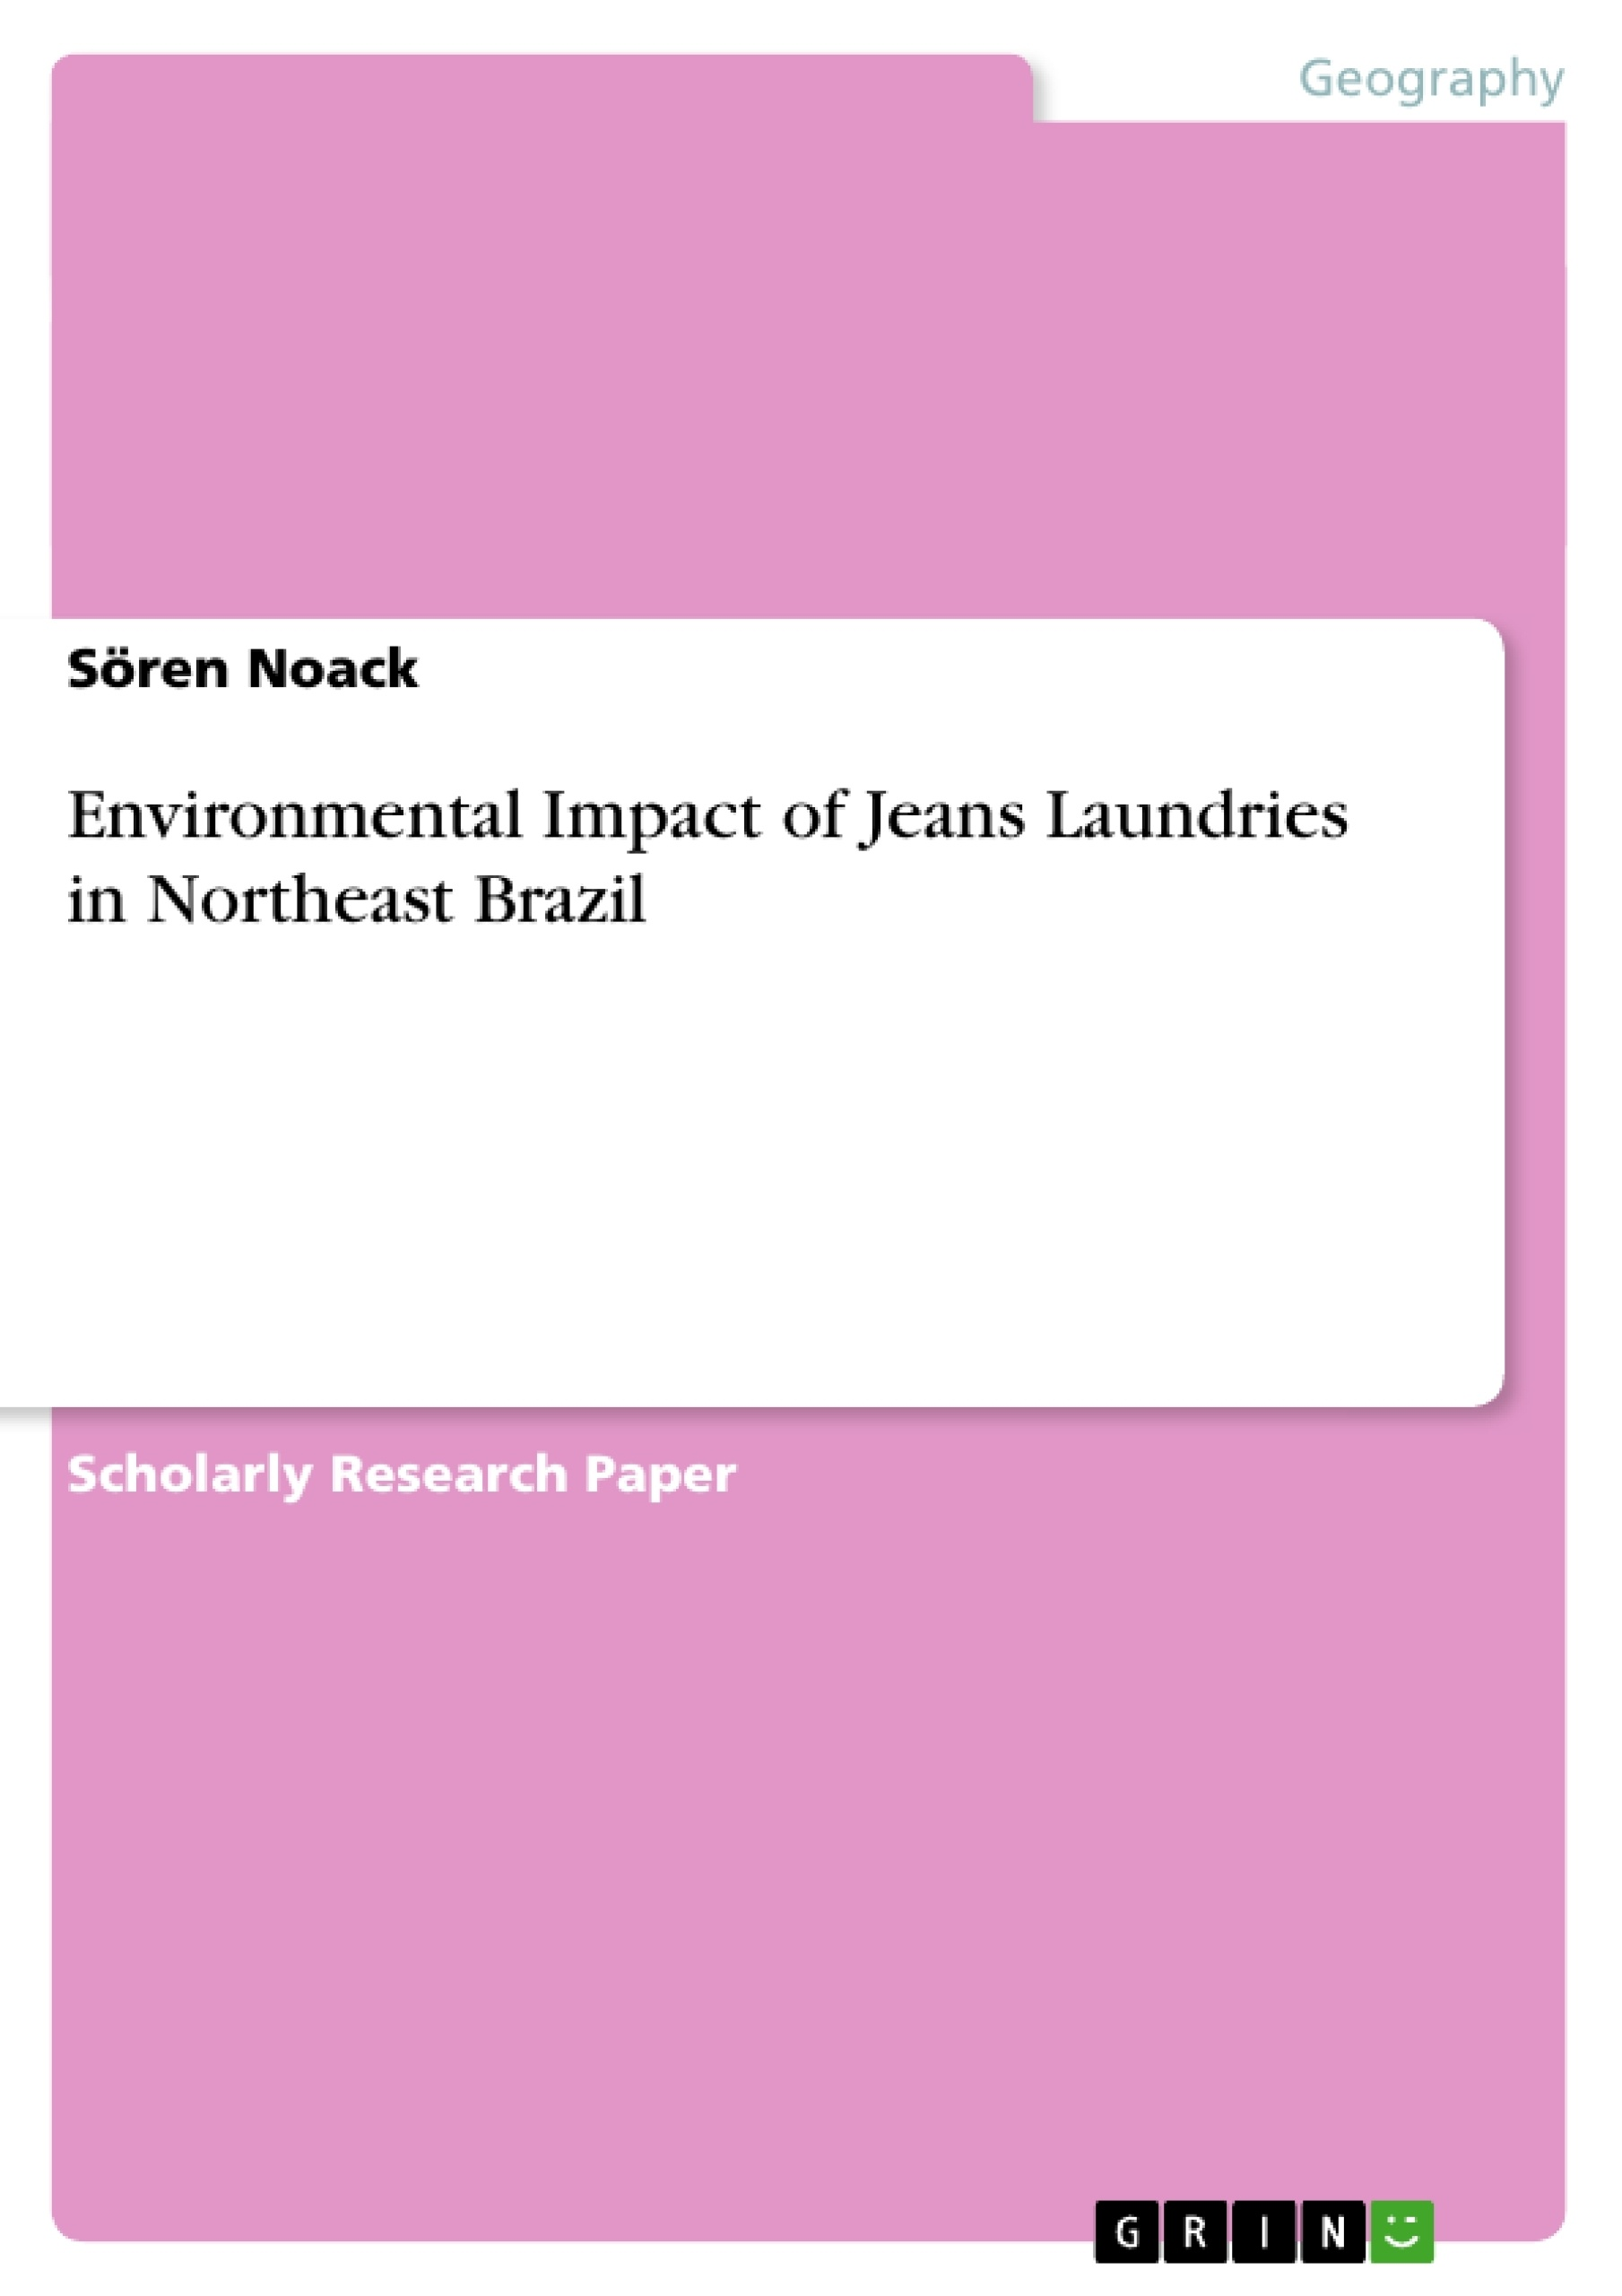 Title: Environmental Impact of Jeans Laundries in Northeast Brazil